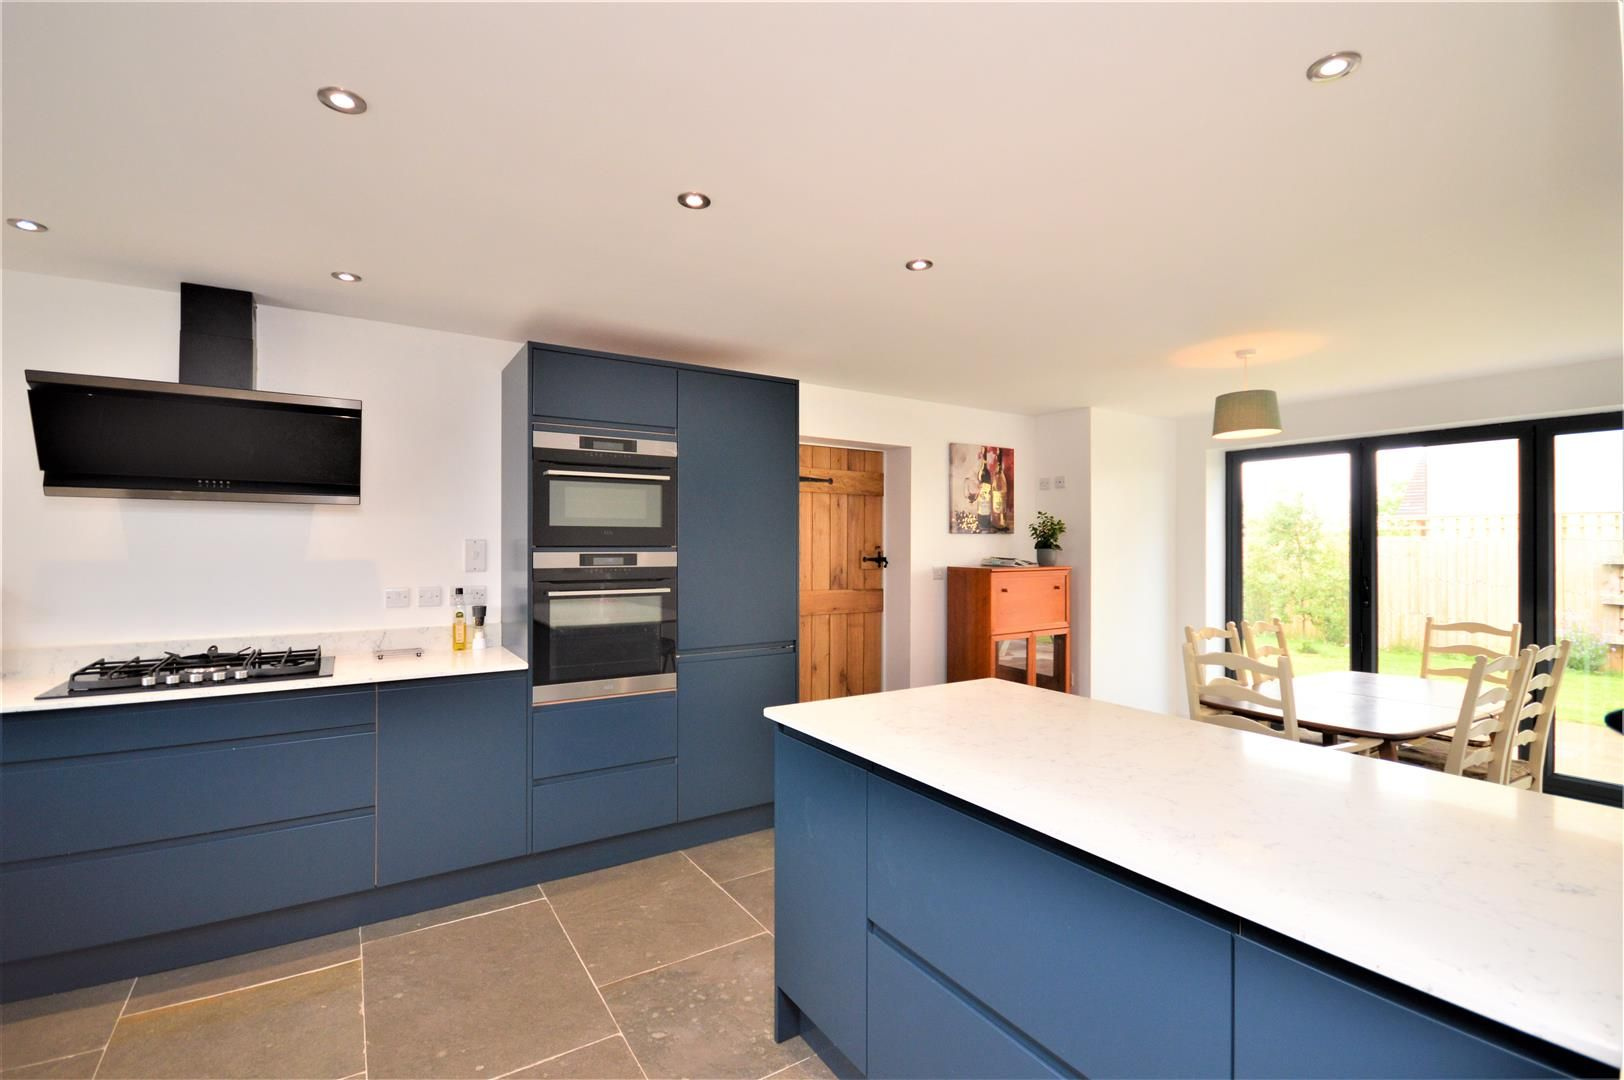 4 bed detached for sale in Marden 3